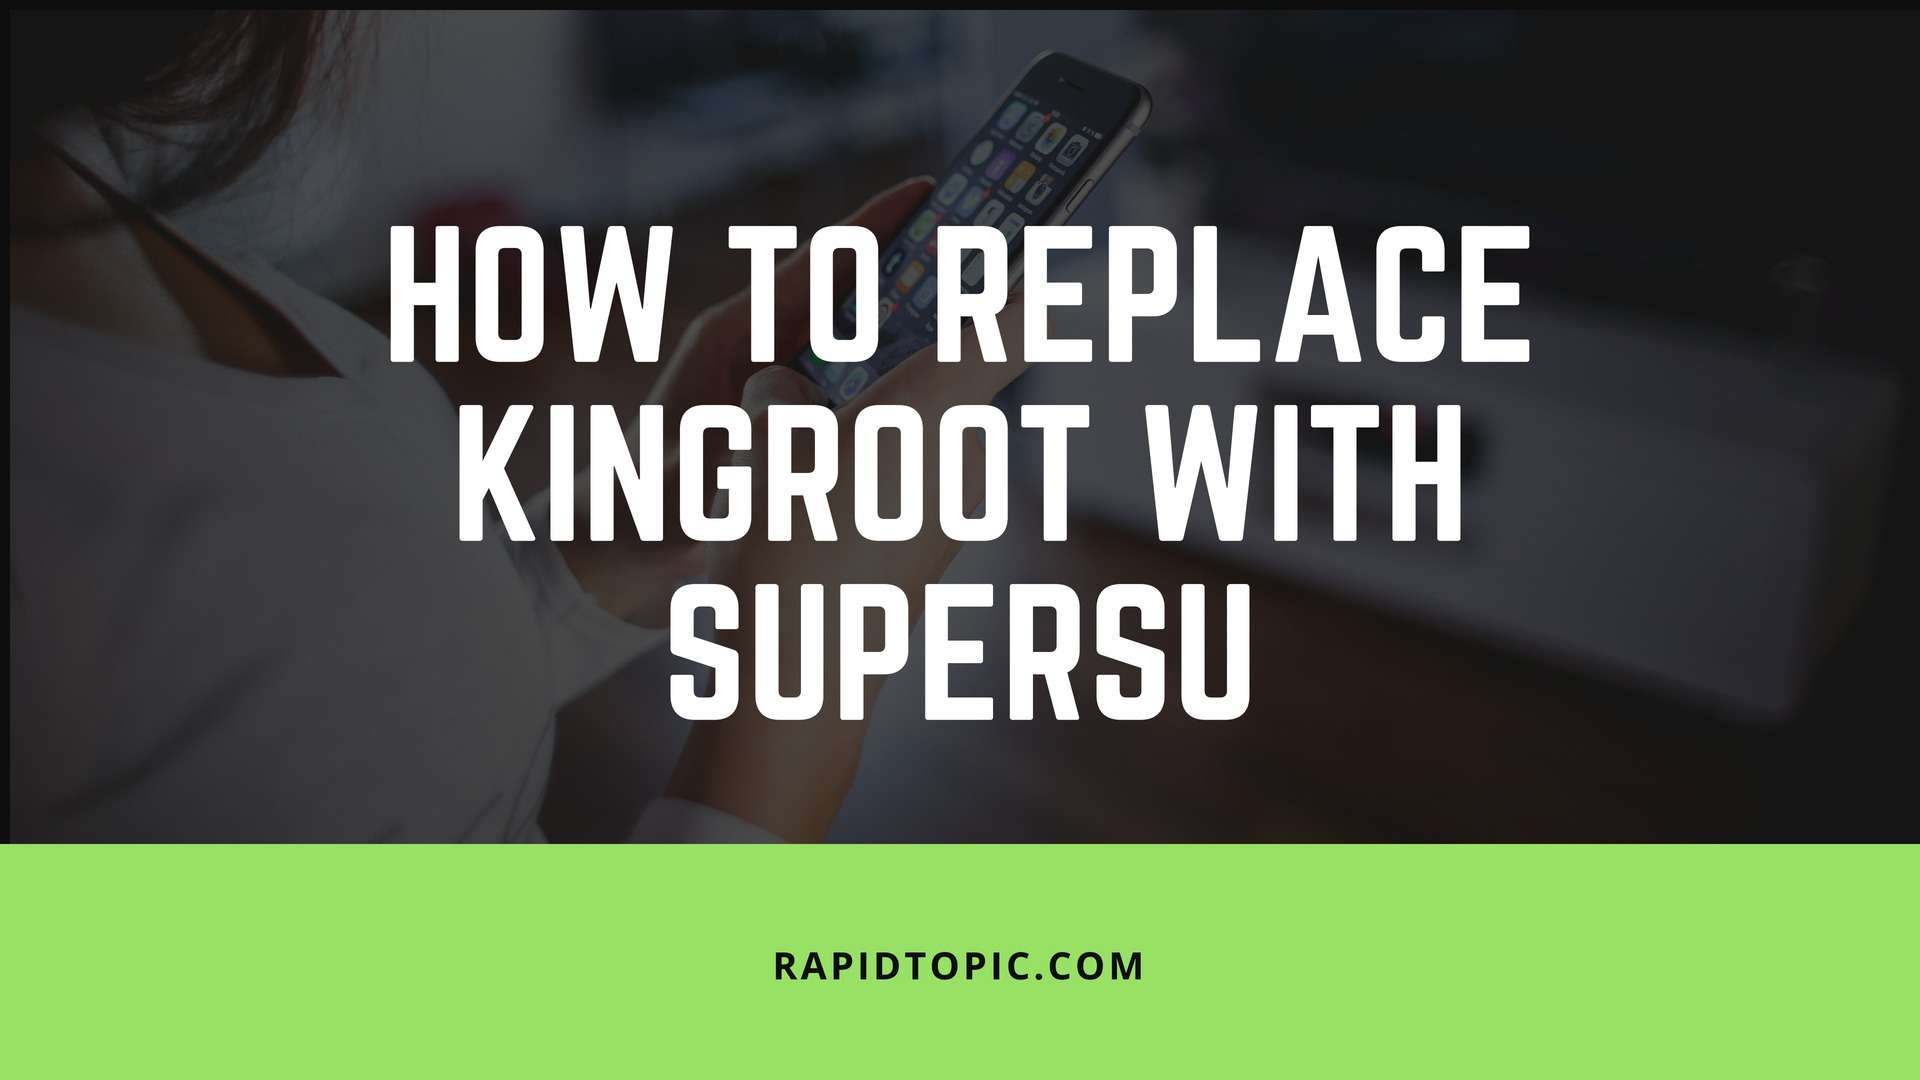 replace kingroot with supersu